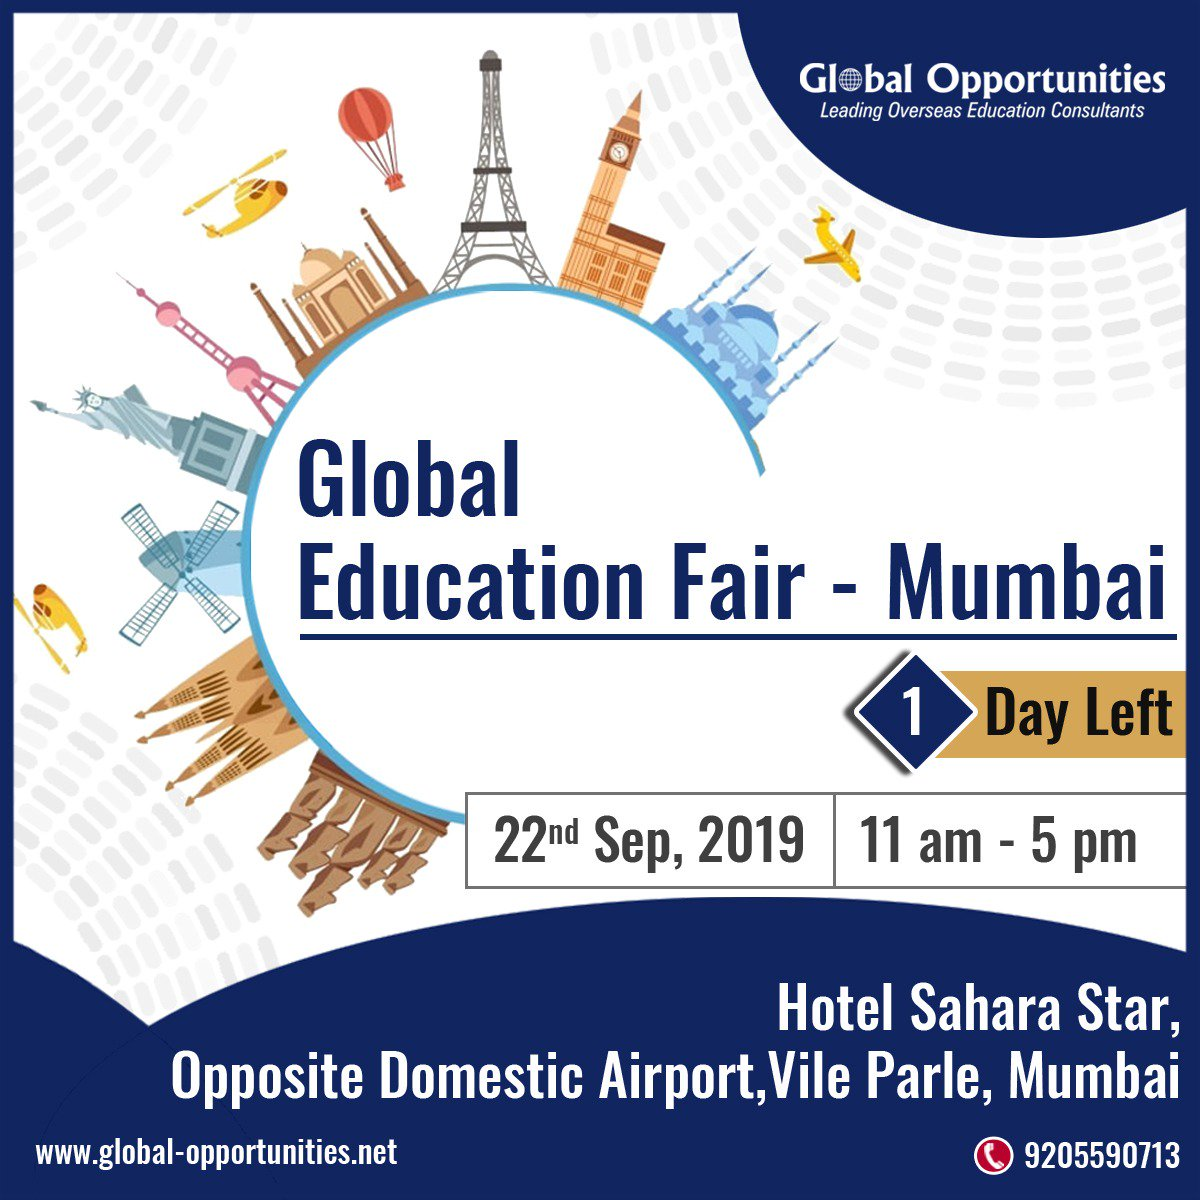 1 DAY LEFT FOR GLOBAL EDUCATION FAIR- MUMBAI Date: 22th September, 2019 Time: 11:00 AM to 5:00 PM Hotel Sahara Star Call 9205590713 Register: https://www.global-opportunities.net/registeronline.aspx…  #educationfair #educationfair2019 #StudyAbroad #OverseasEducationGuidance #AbroadEducation #Opportunitypic.twitter.com/UjqezWkp4s